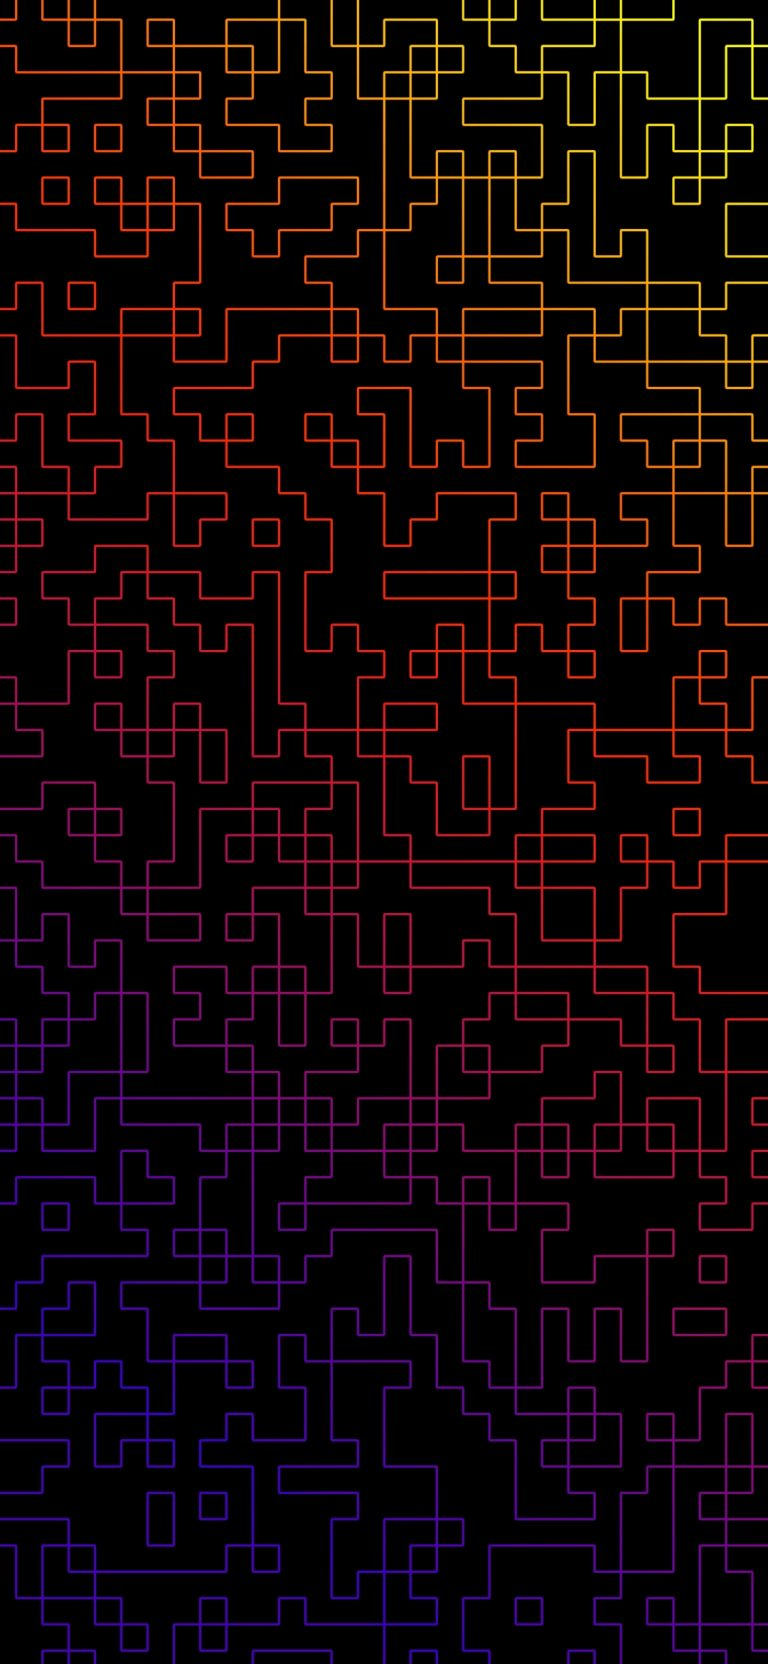 Amoled Phone Wallpaper 077 1080x2340 768x1664